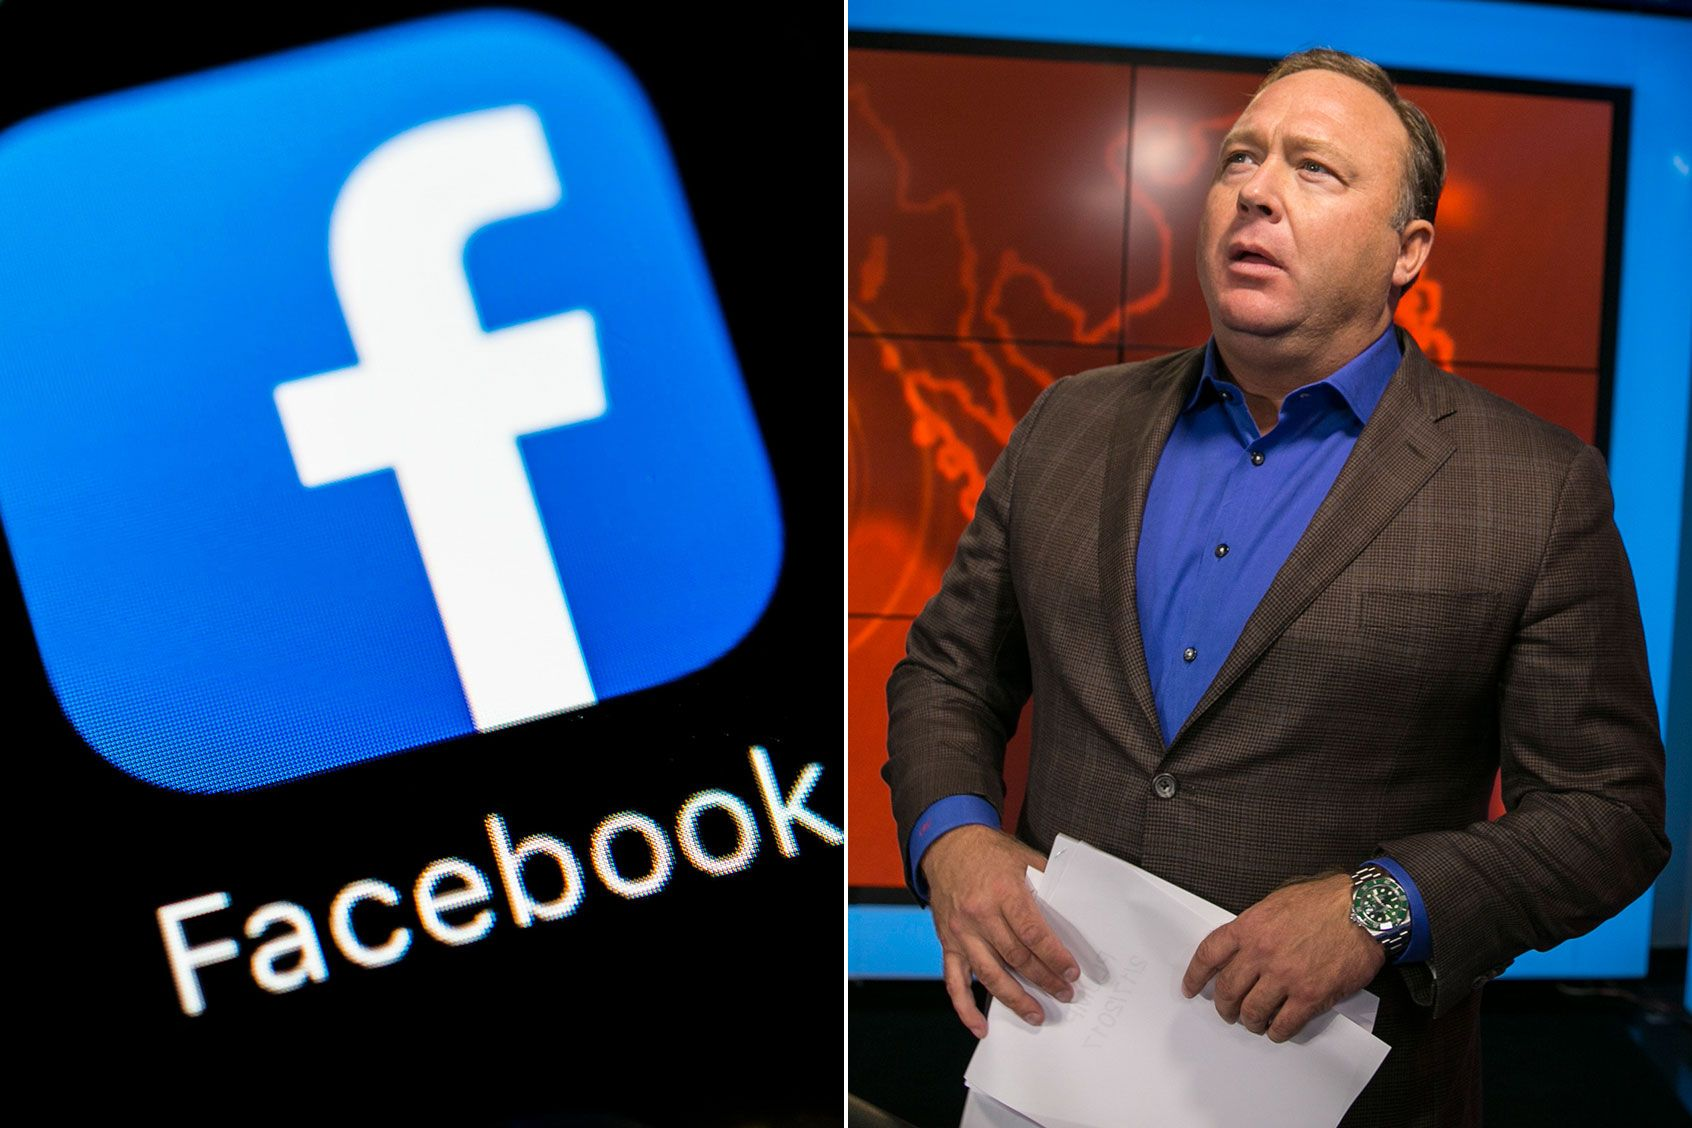 Facebook's alleged censoring of InfoWars and Alex Jones is not a free speech issue